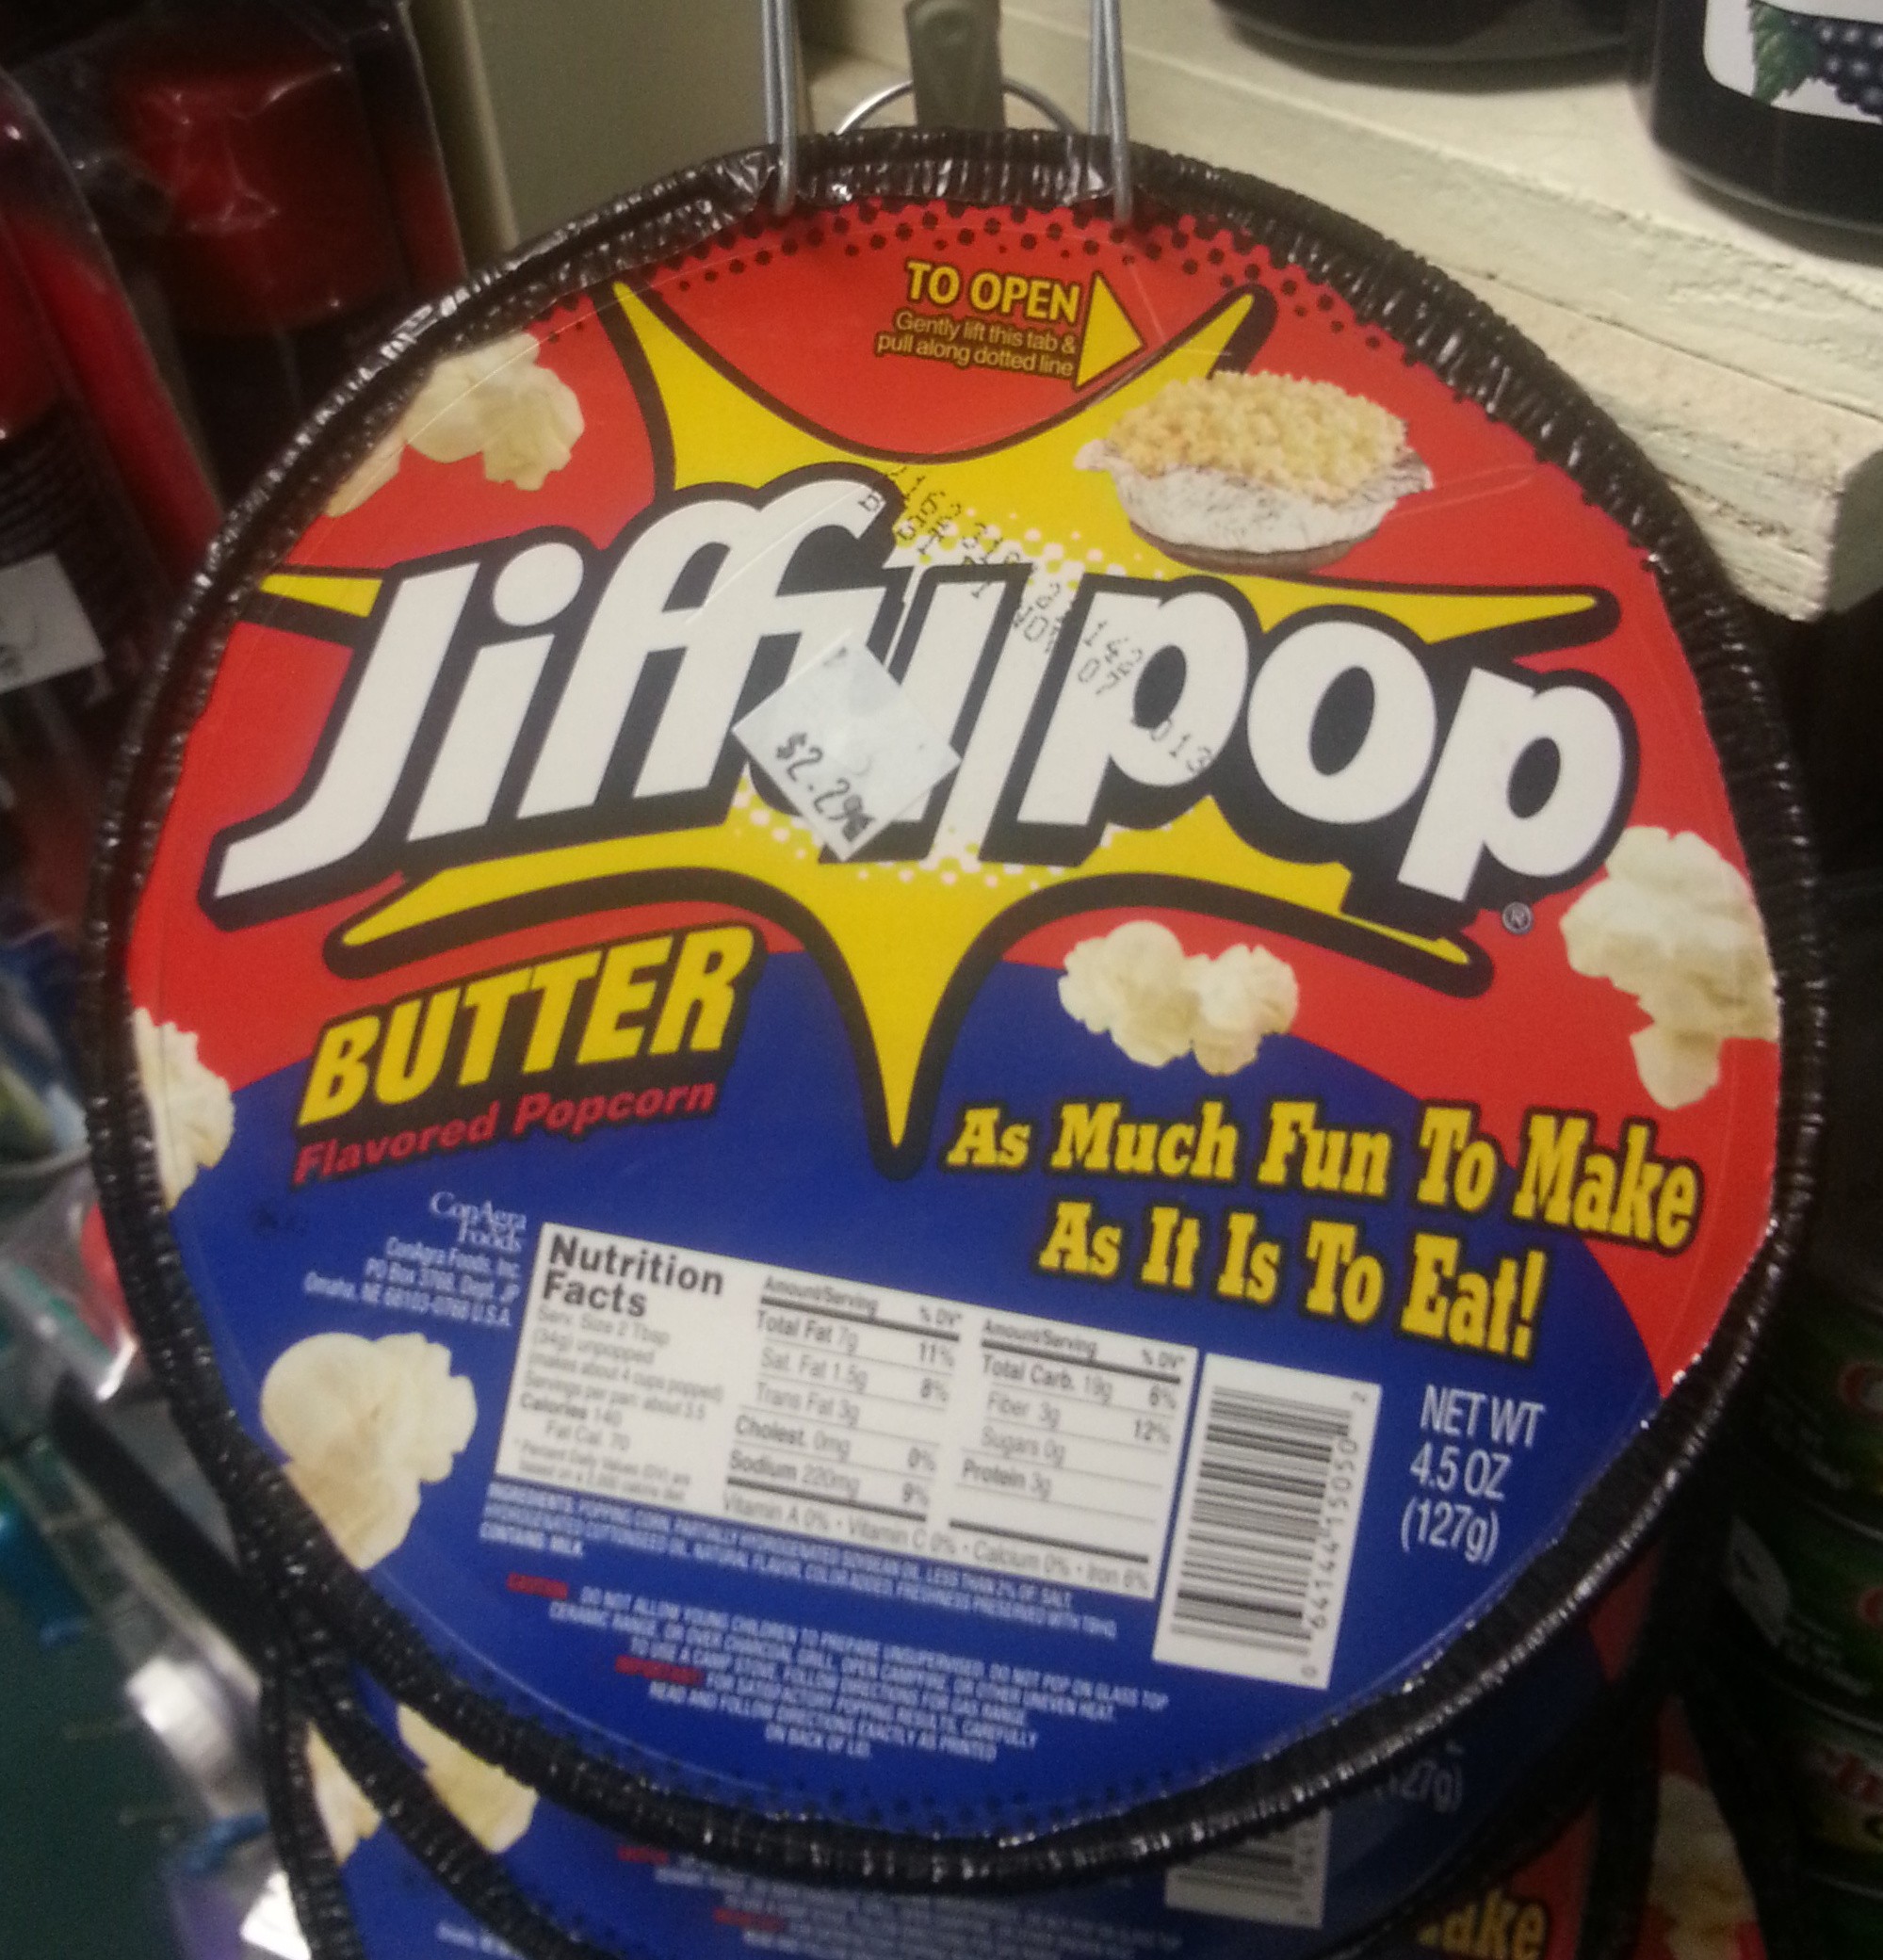 Butter flavored Popcorn - Product